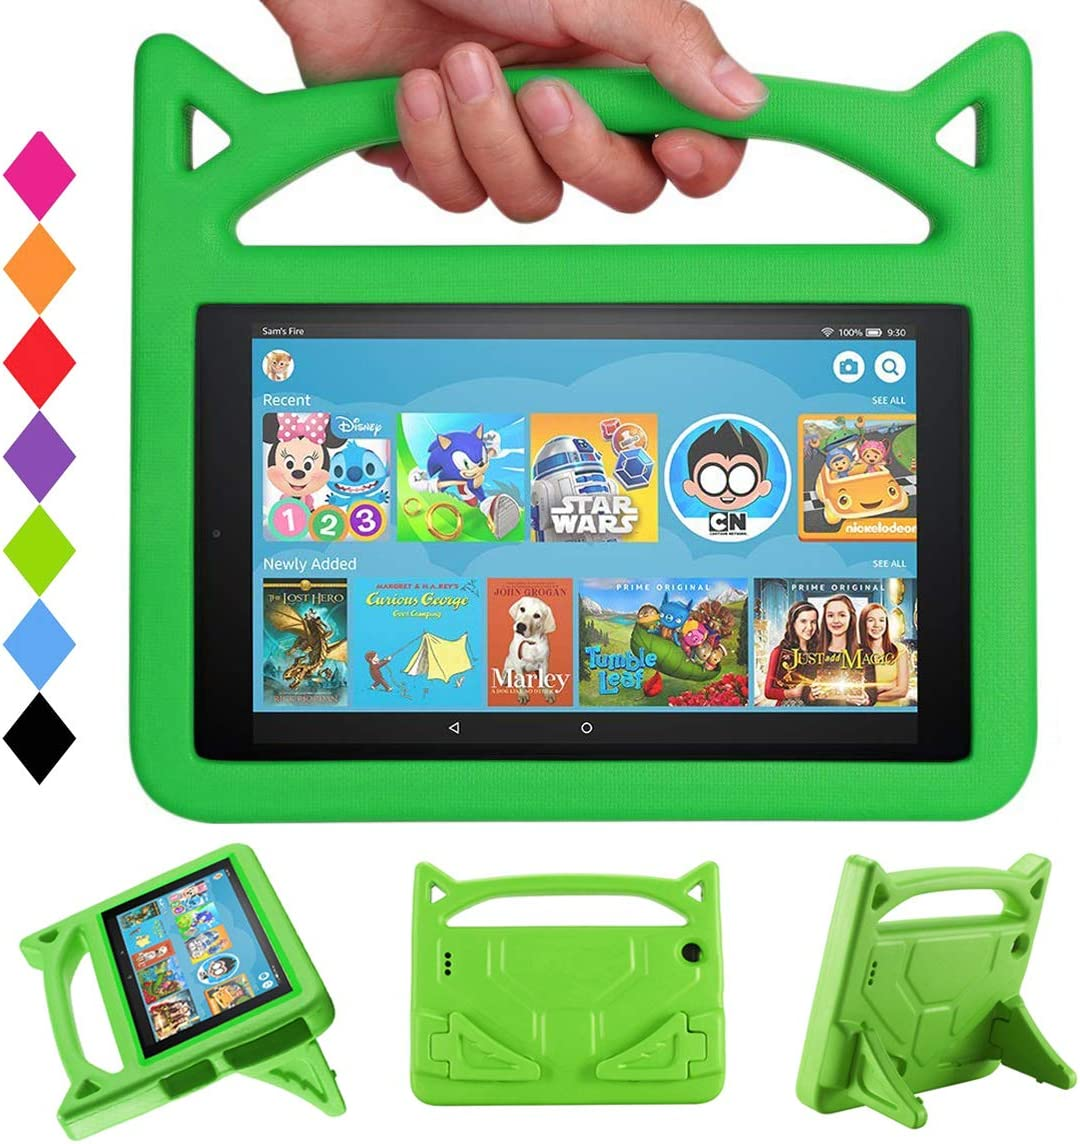 HD 10 Tablet Case for Kids - Mr. Spades Light Weight Shock Proof with Stand Kid Proof Cover Kids Cases for All New HD 10 Tablets (9th/7th/5th Generation - 2019/2017/2015 Release) - Green